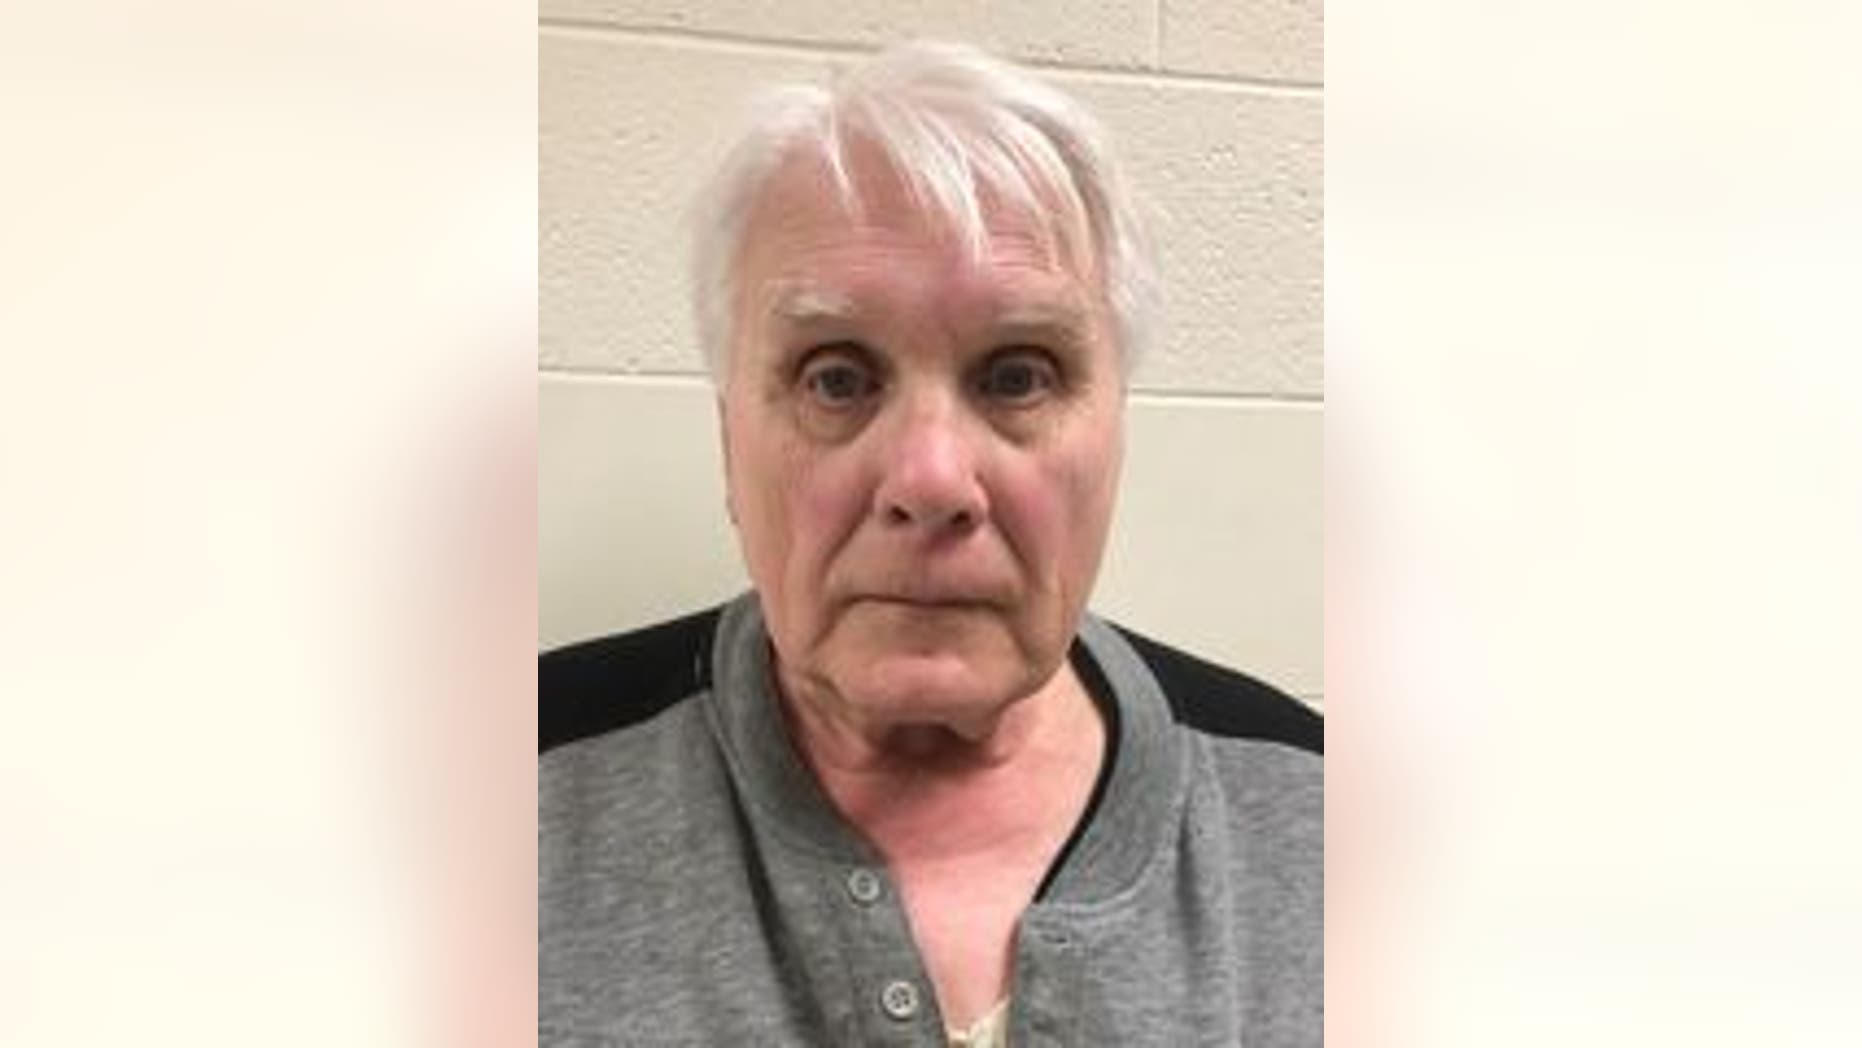 Richard Gale Pierce, 82, has been charged in the 1975 death of his wife.